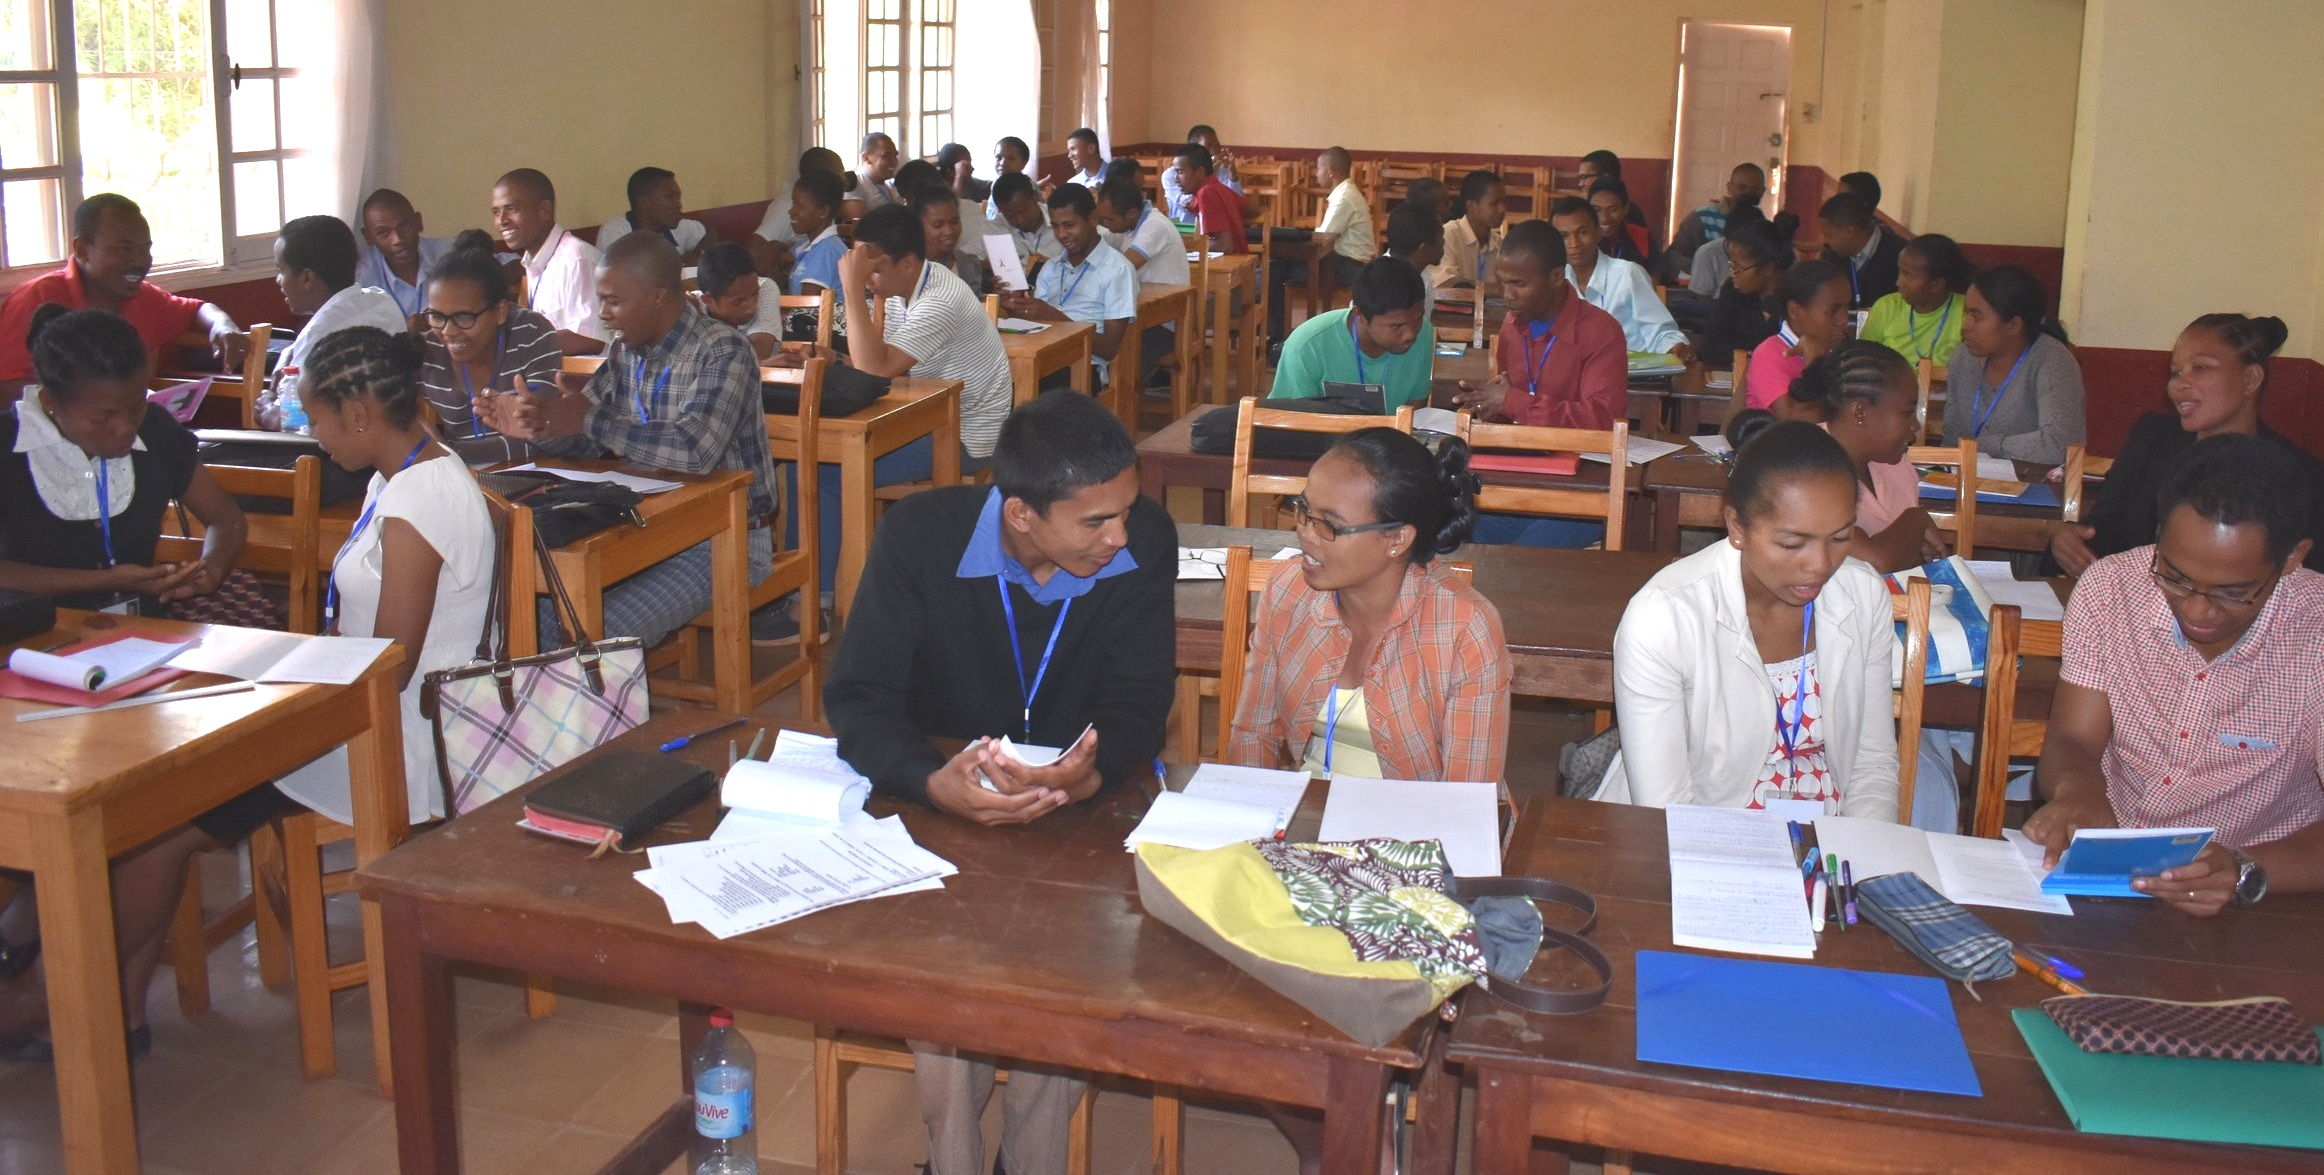 Seminary students practicing counseling techniques during AIDS training.